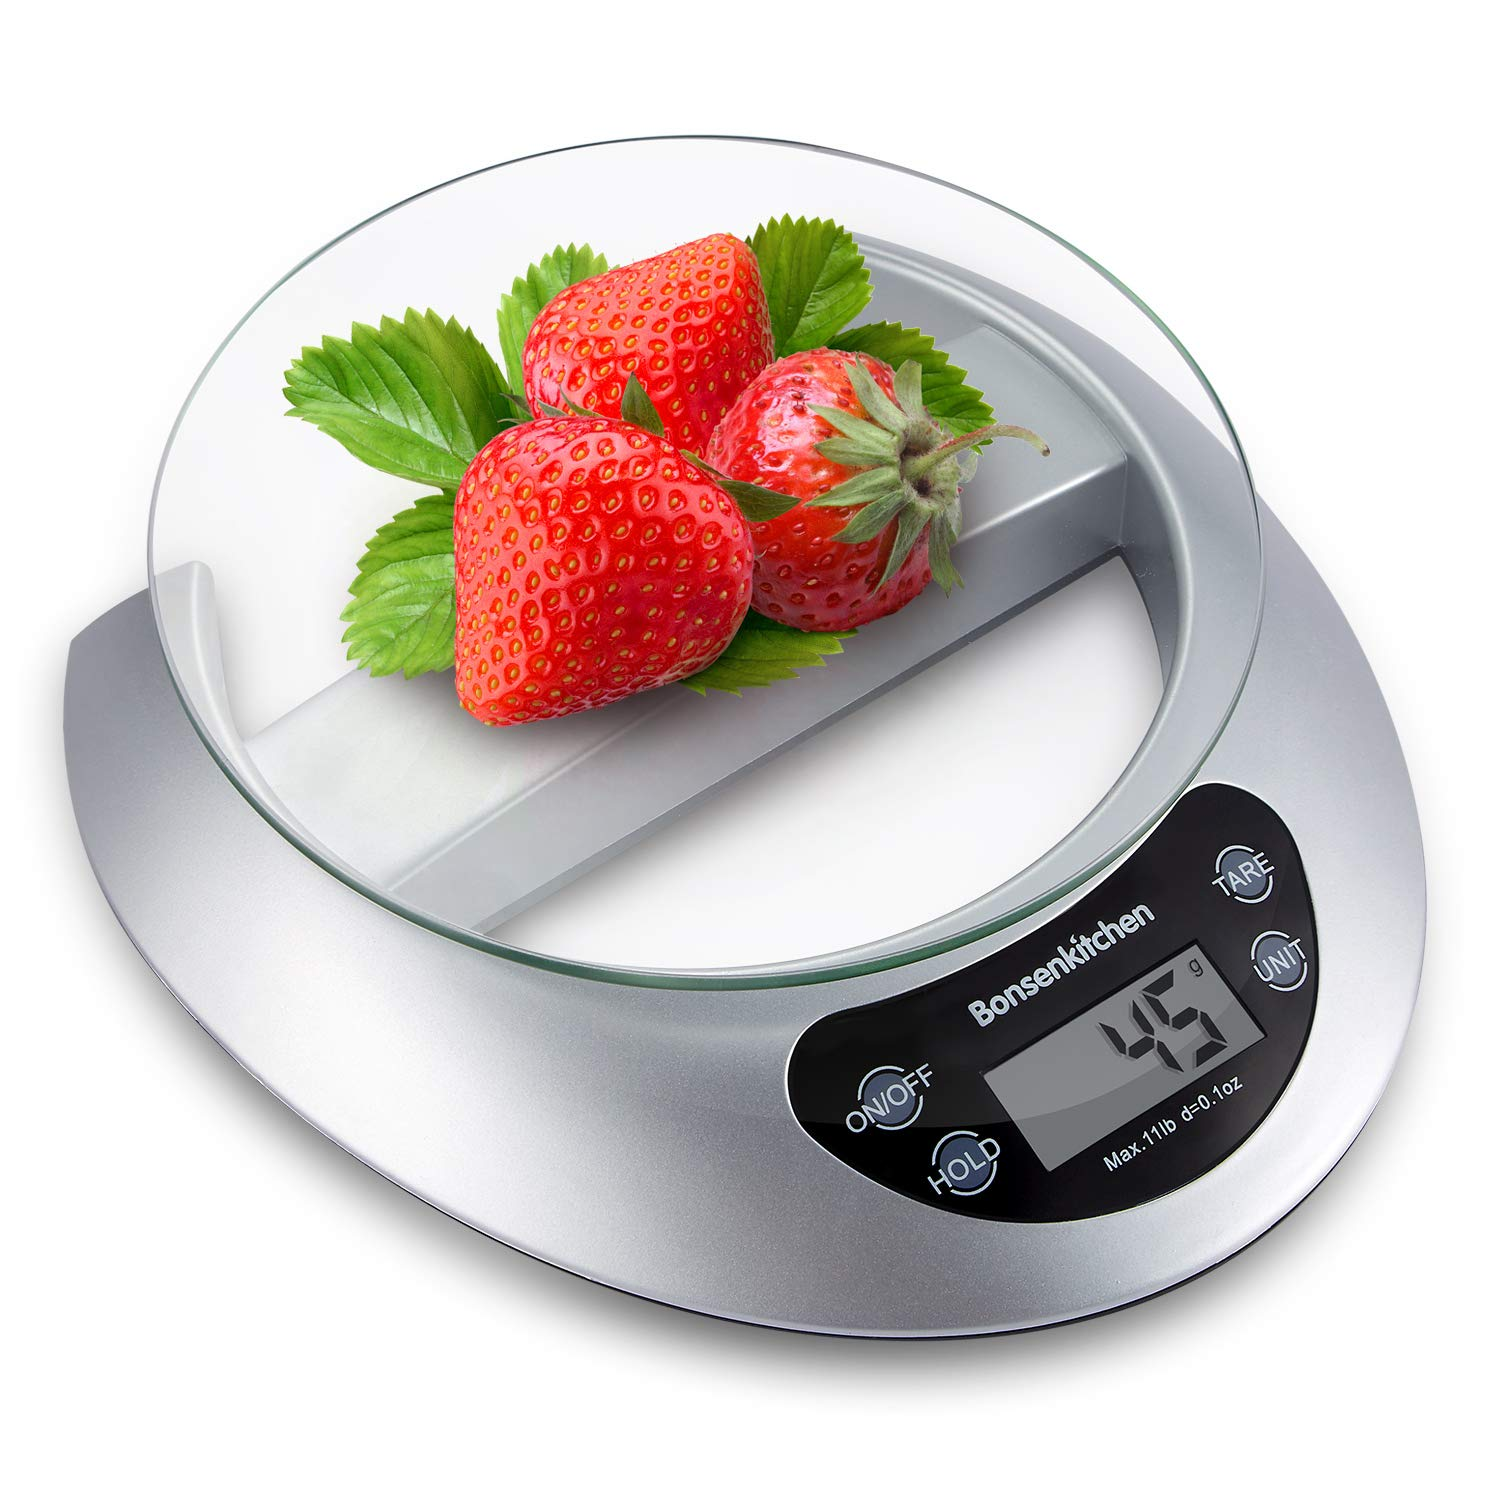 Digital Food Kitchen Scale, 11lb Digital Kitchen Scale Weight Grams and oz for Cooking Baking, 1g/0.1oz Precise Graduation, High Accuracy with Tare & Auto Off Multifunction , Ash Grey